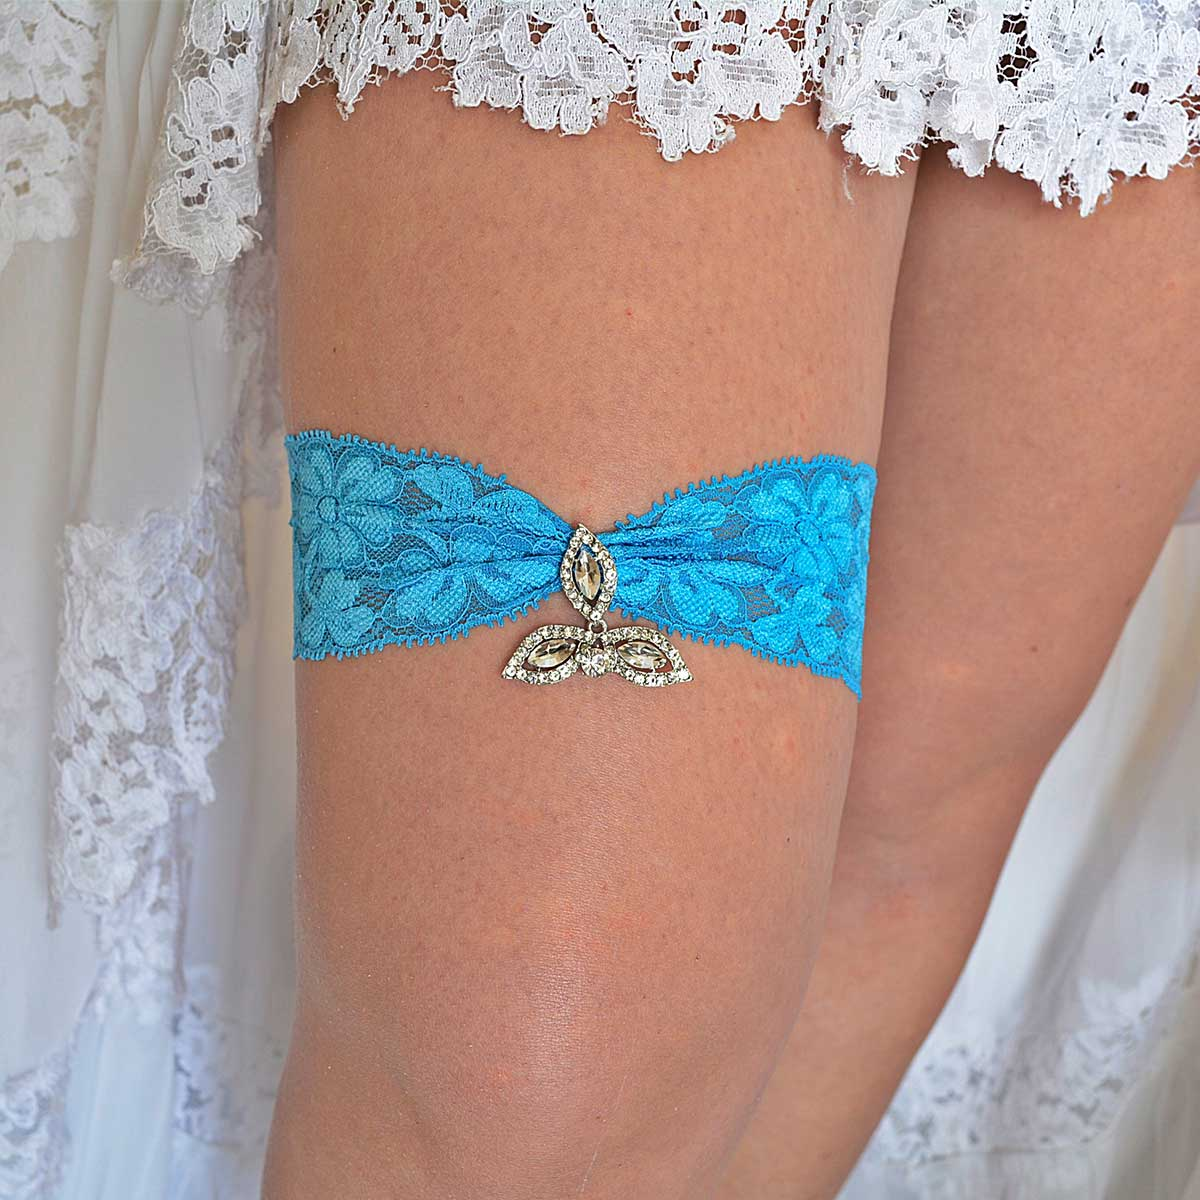 Turquoise Wedding Garter Set With Clear Rhinestone - Wedding Garter - SuzannaM Designs